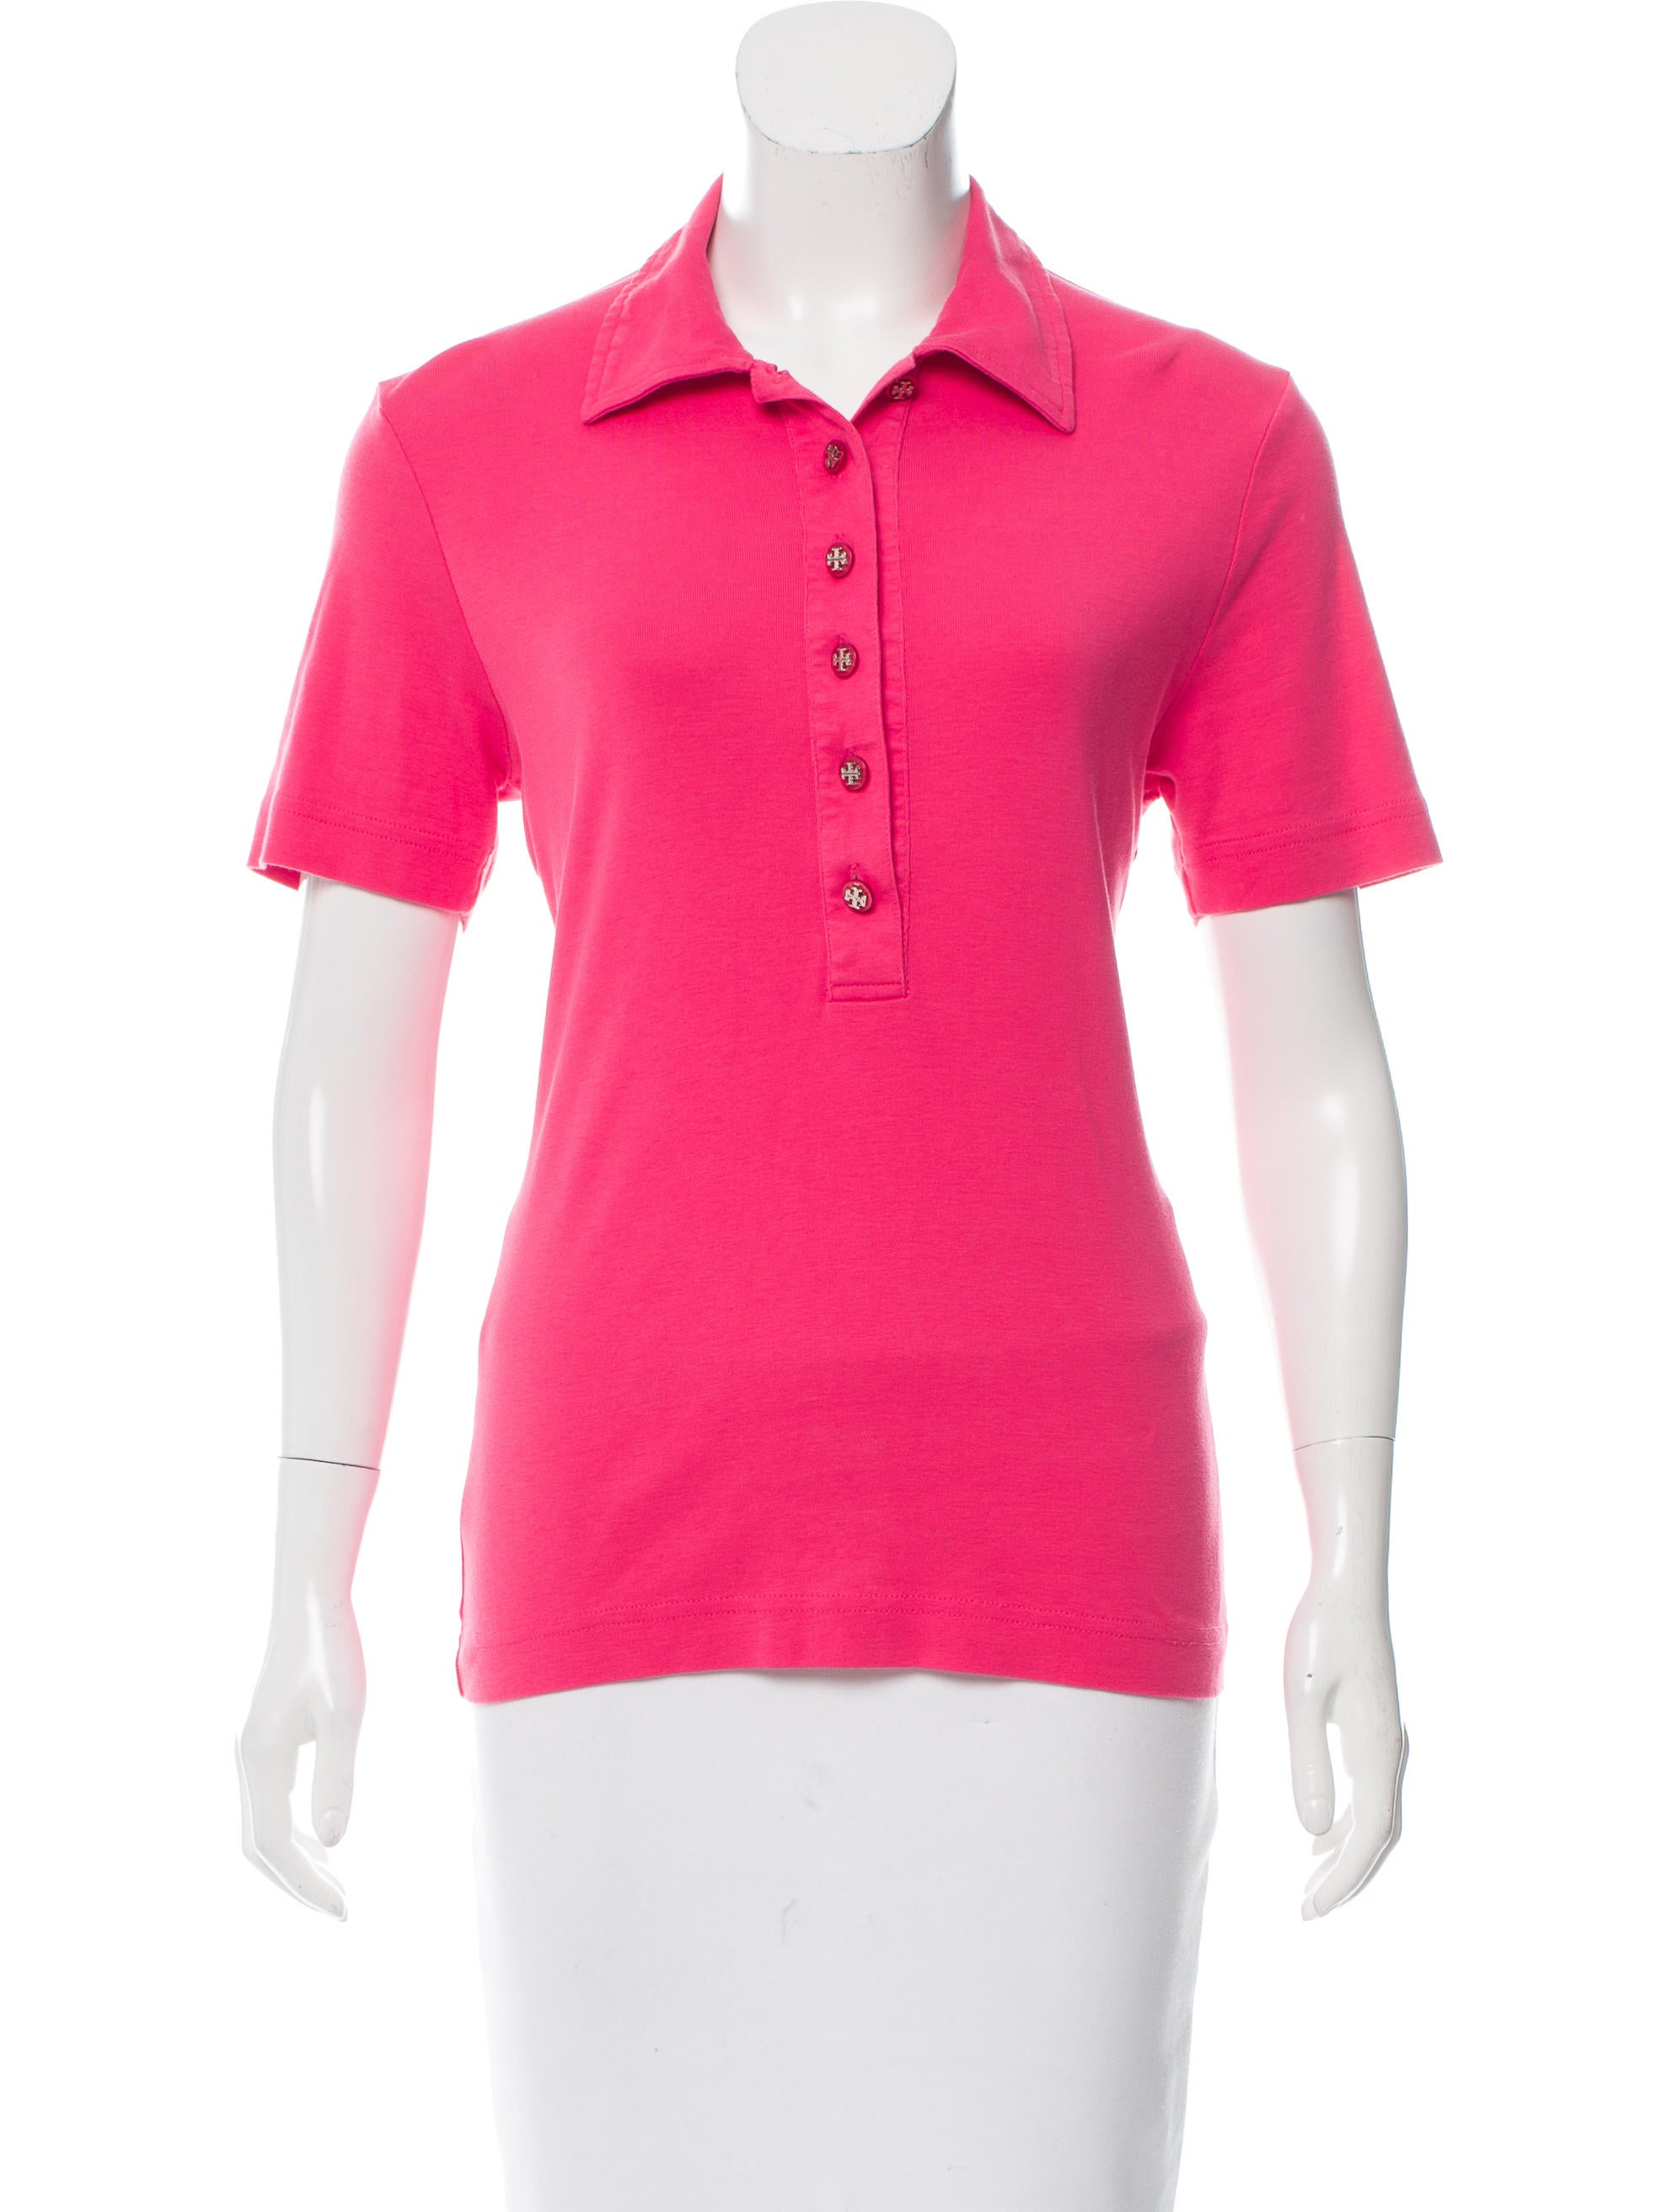 Tory burch button up polo shirt clothing wto95848 for No button polo shirts